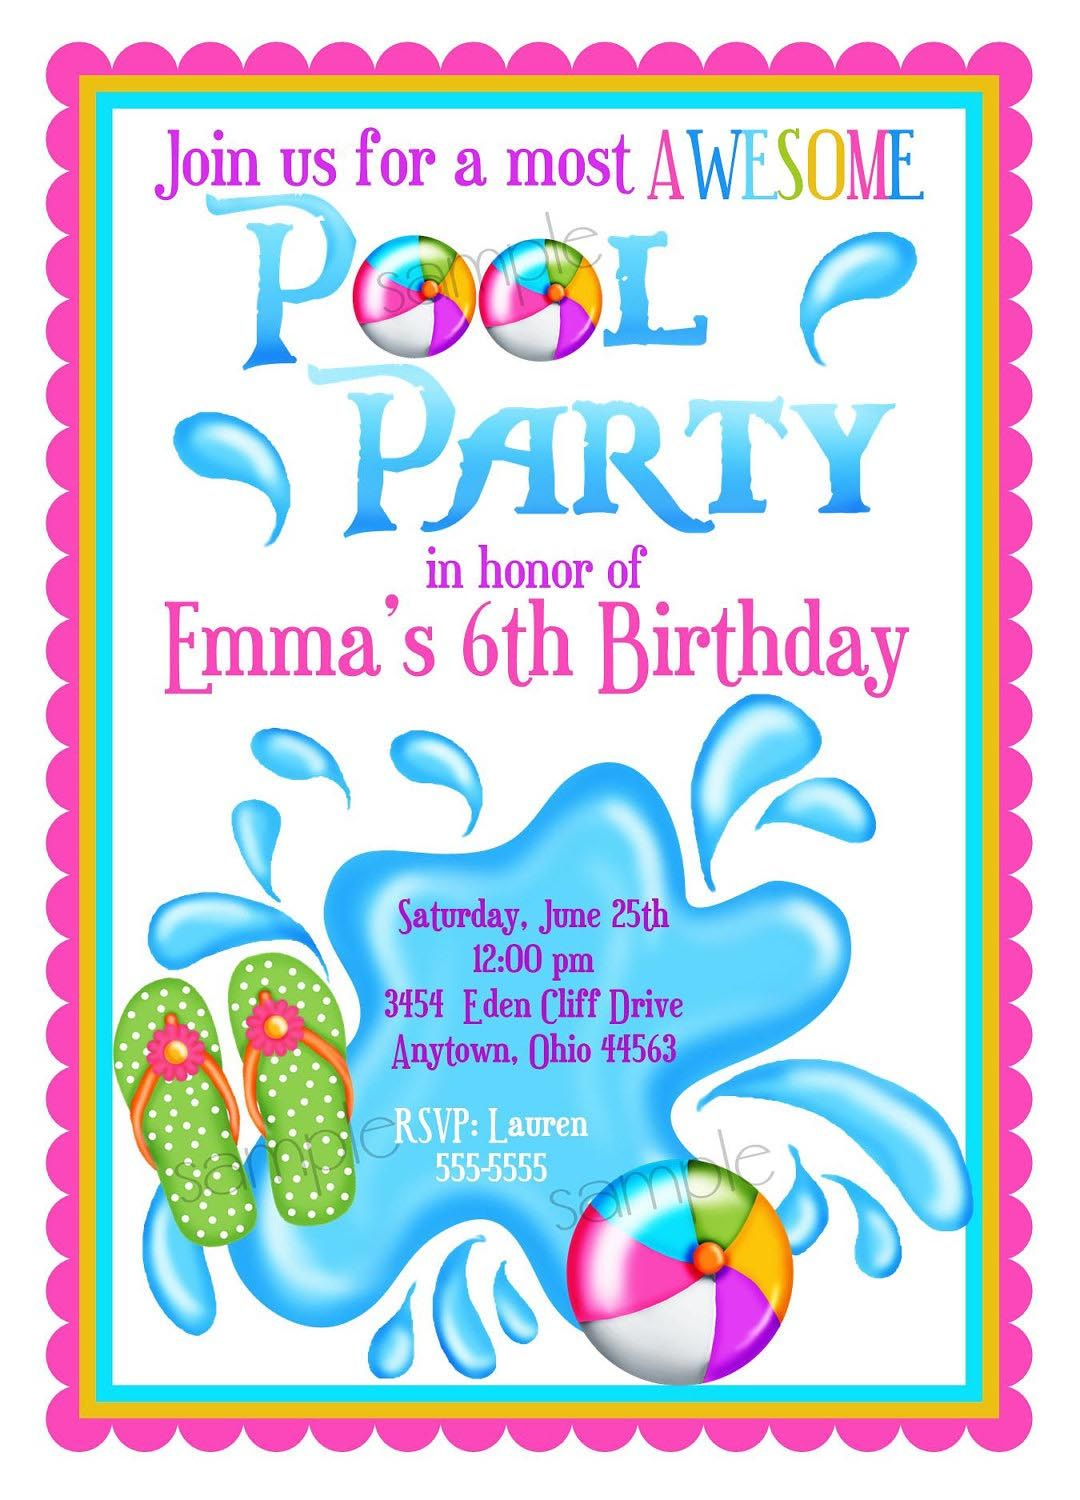 6th Birthday Party Invitation Wording Images - invitation templates ...